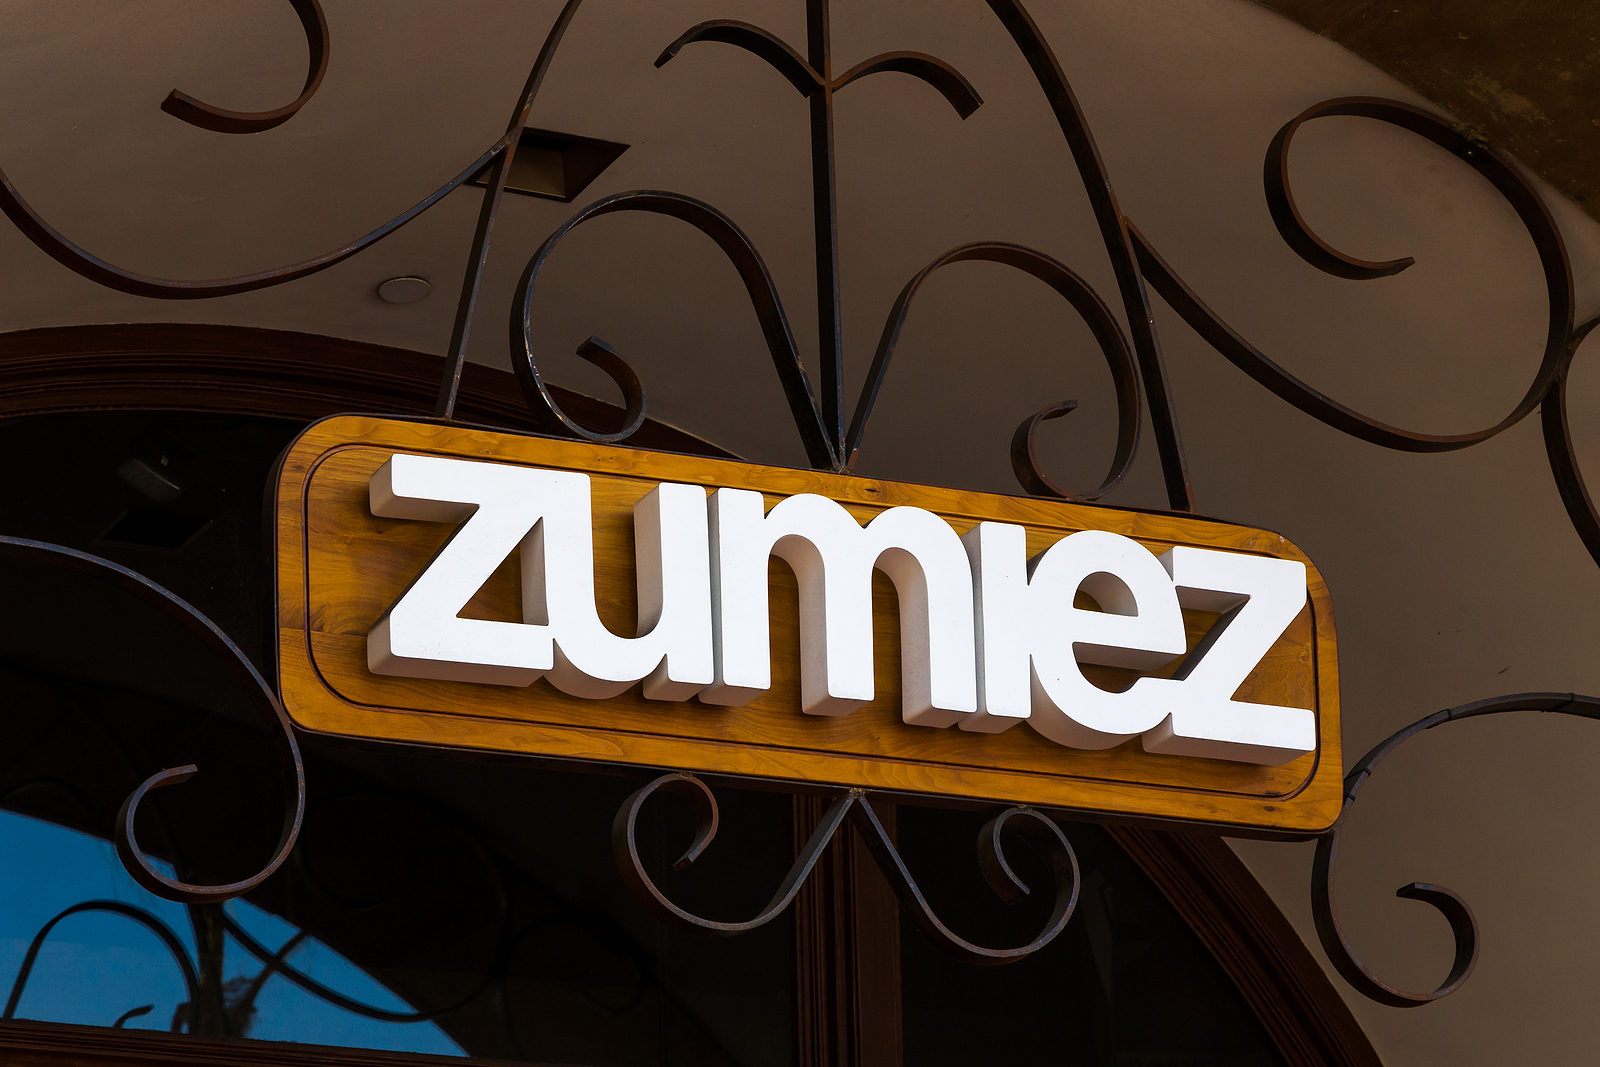 Zumiez ZUMZ stock news and analysis